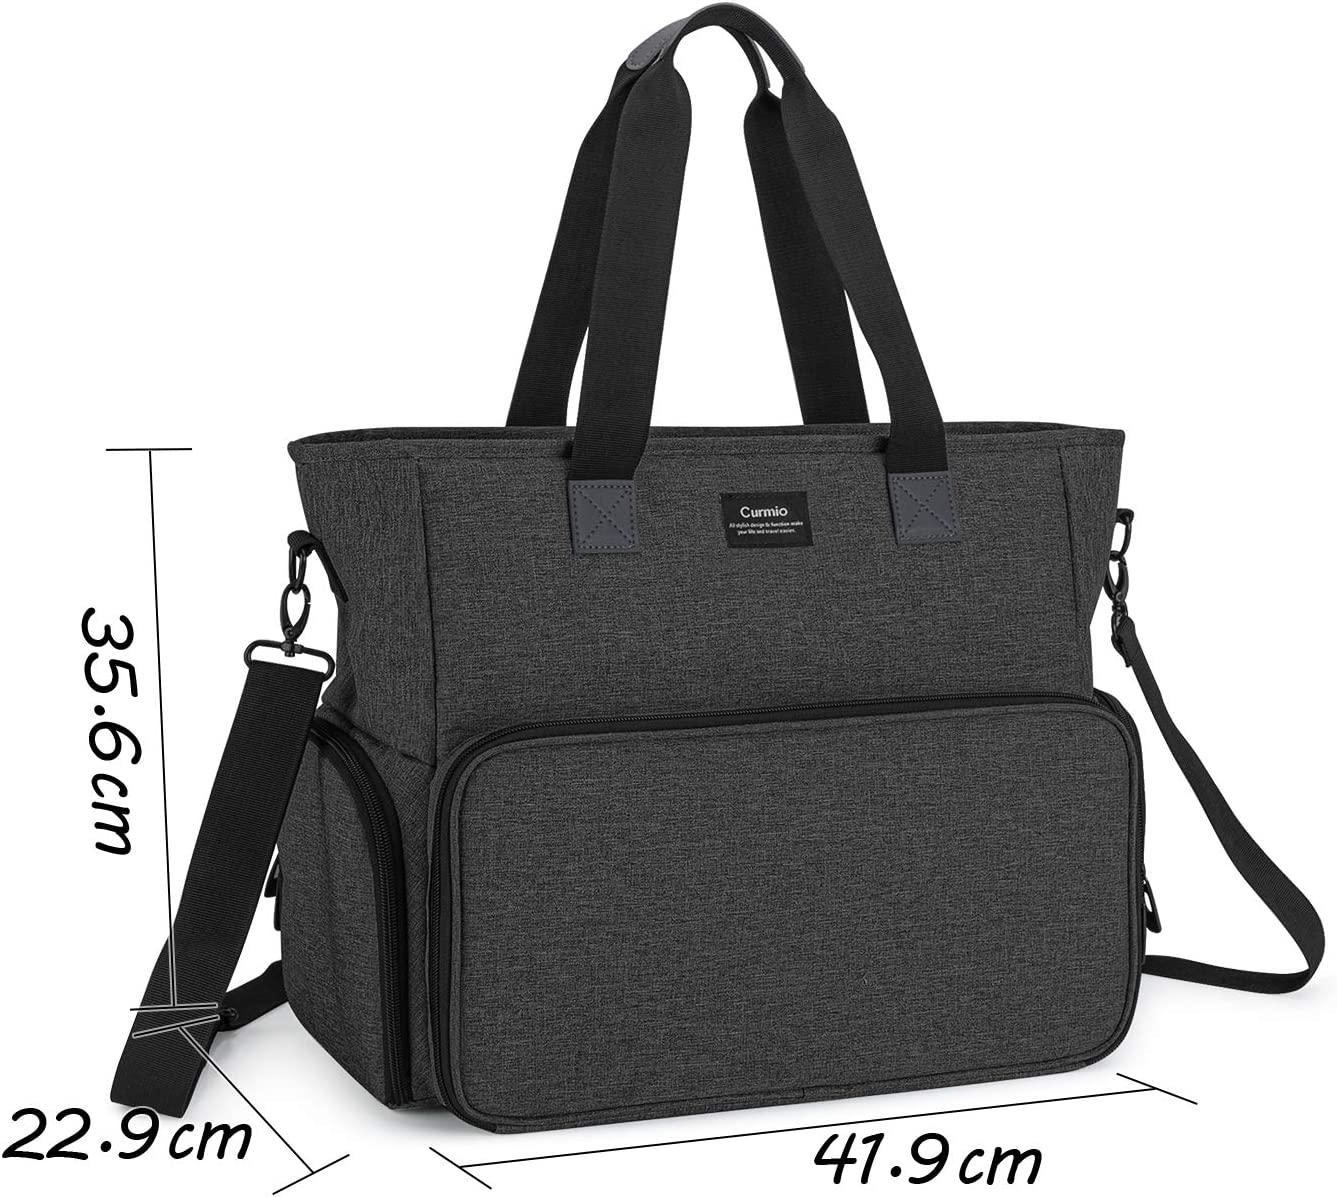 Health Care Hospice CURMIO Nurse Bag and Tote with Padded Laptop Sleeve Medical assistant Perfect for Nursing Students Medical Supplies Bag for Home Visits Visiting nurses,BAG ONLY,Black